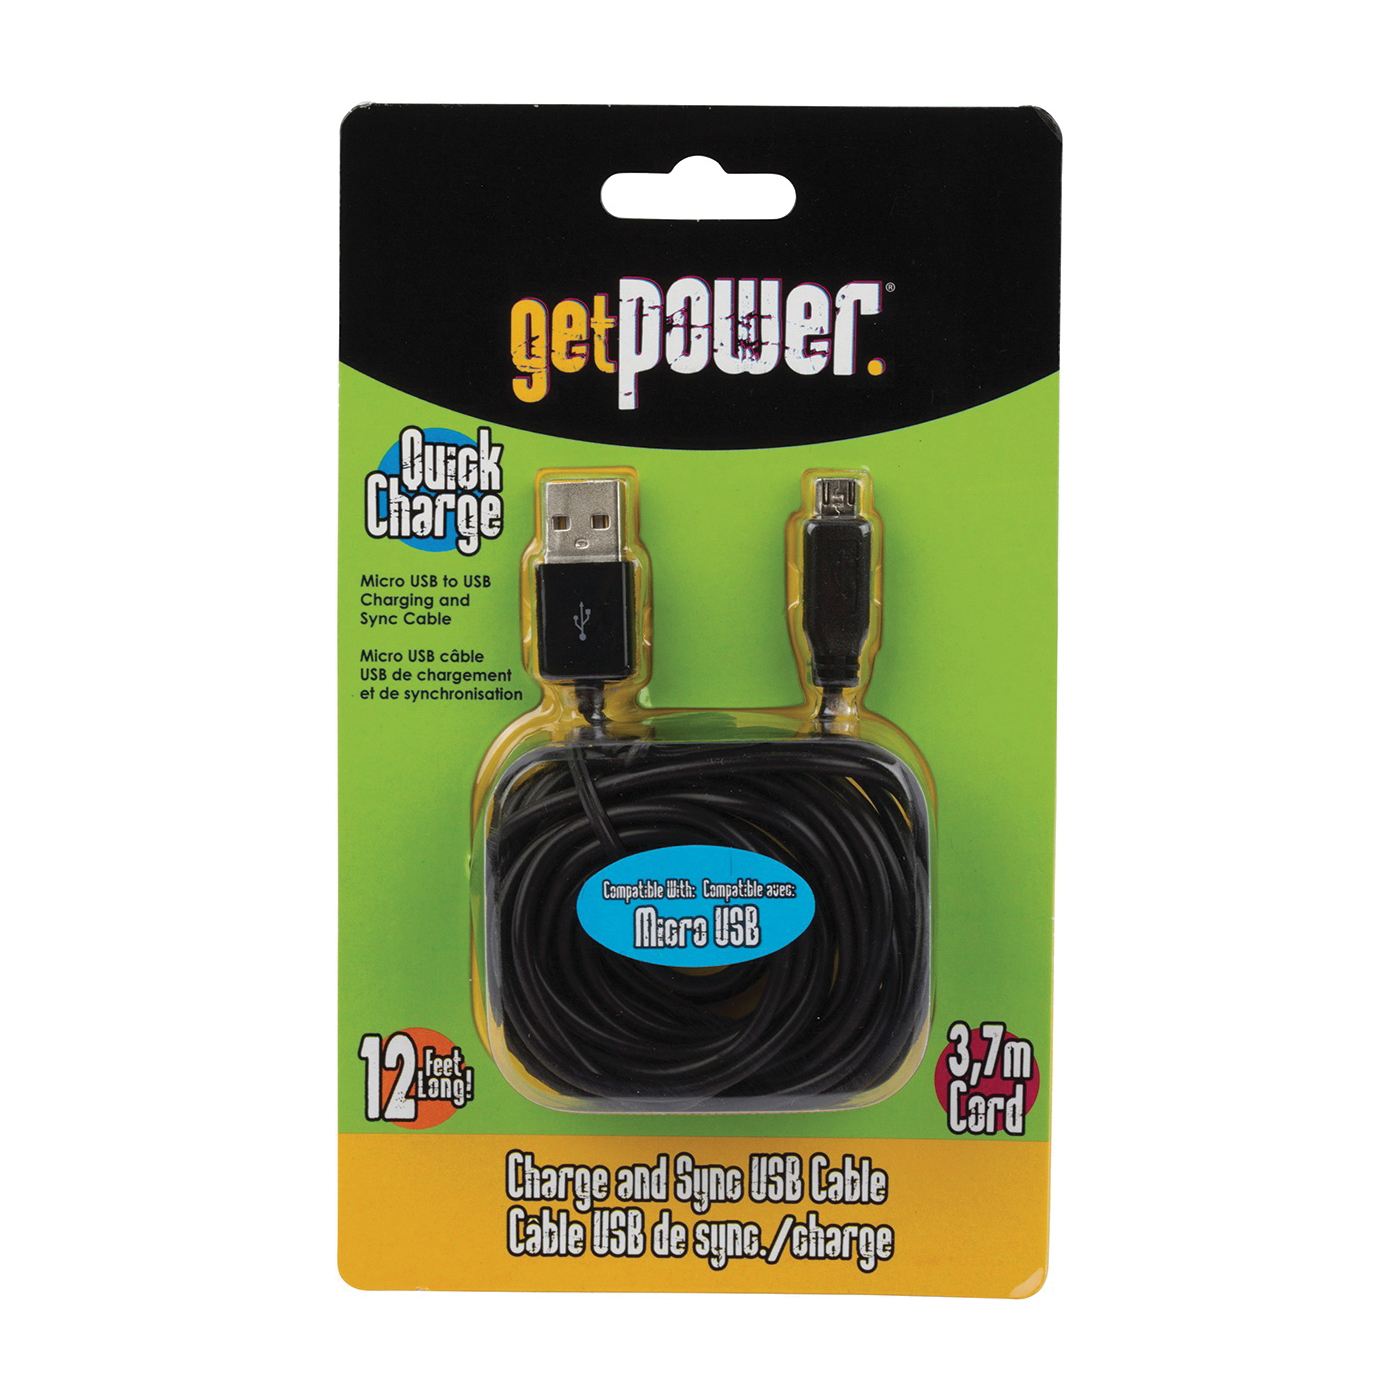 Picture of GetPower GP-XL-USB-M Charge/Sync Cable USB, Black, 12 ft L